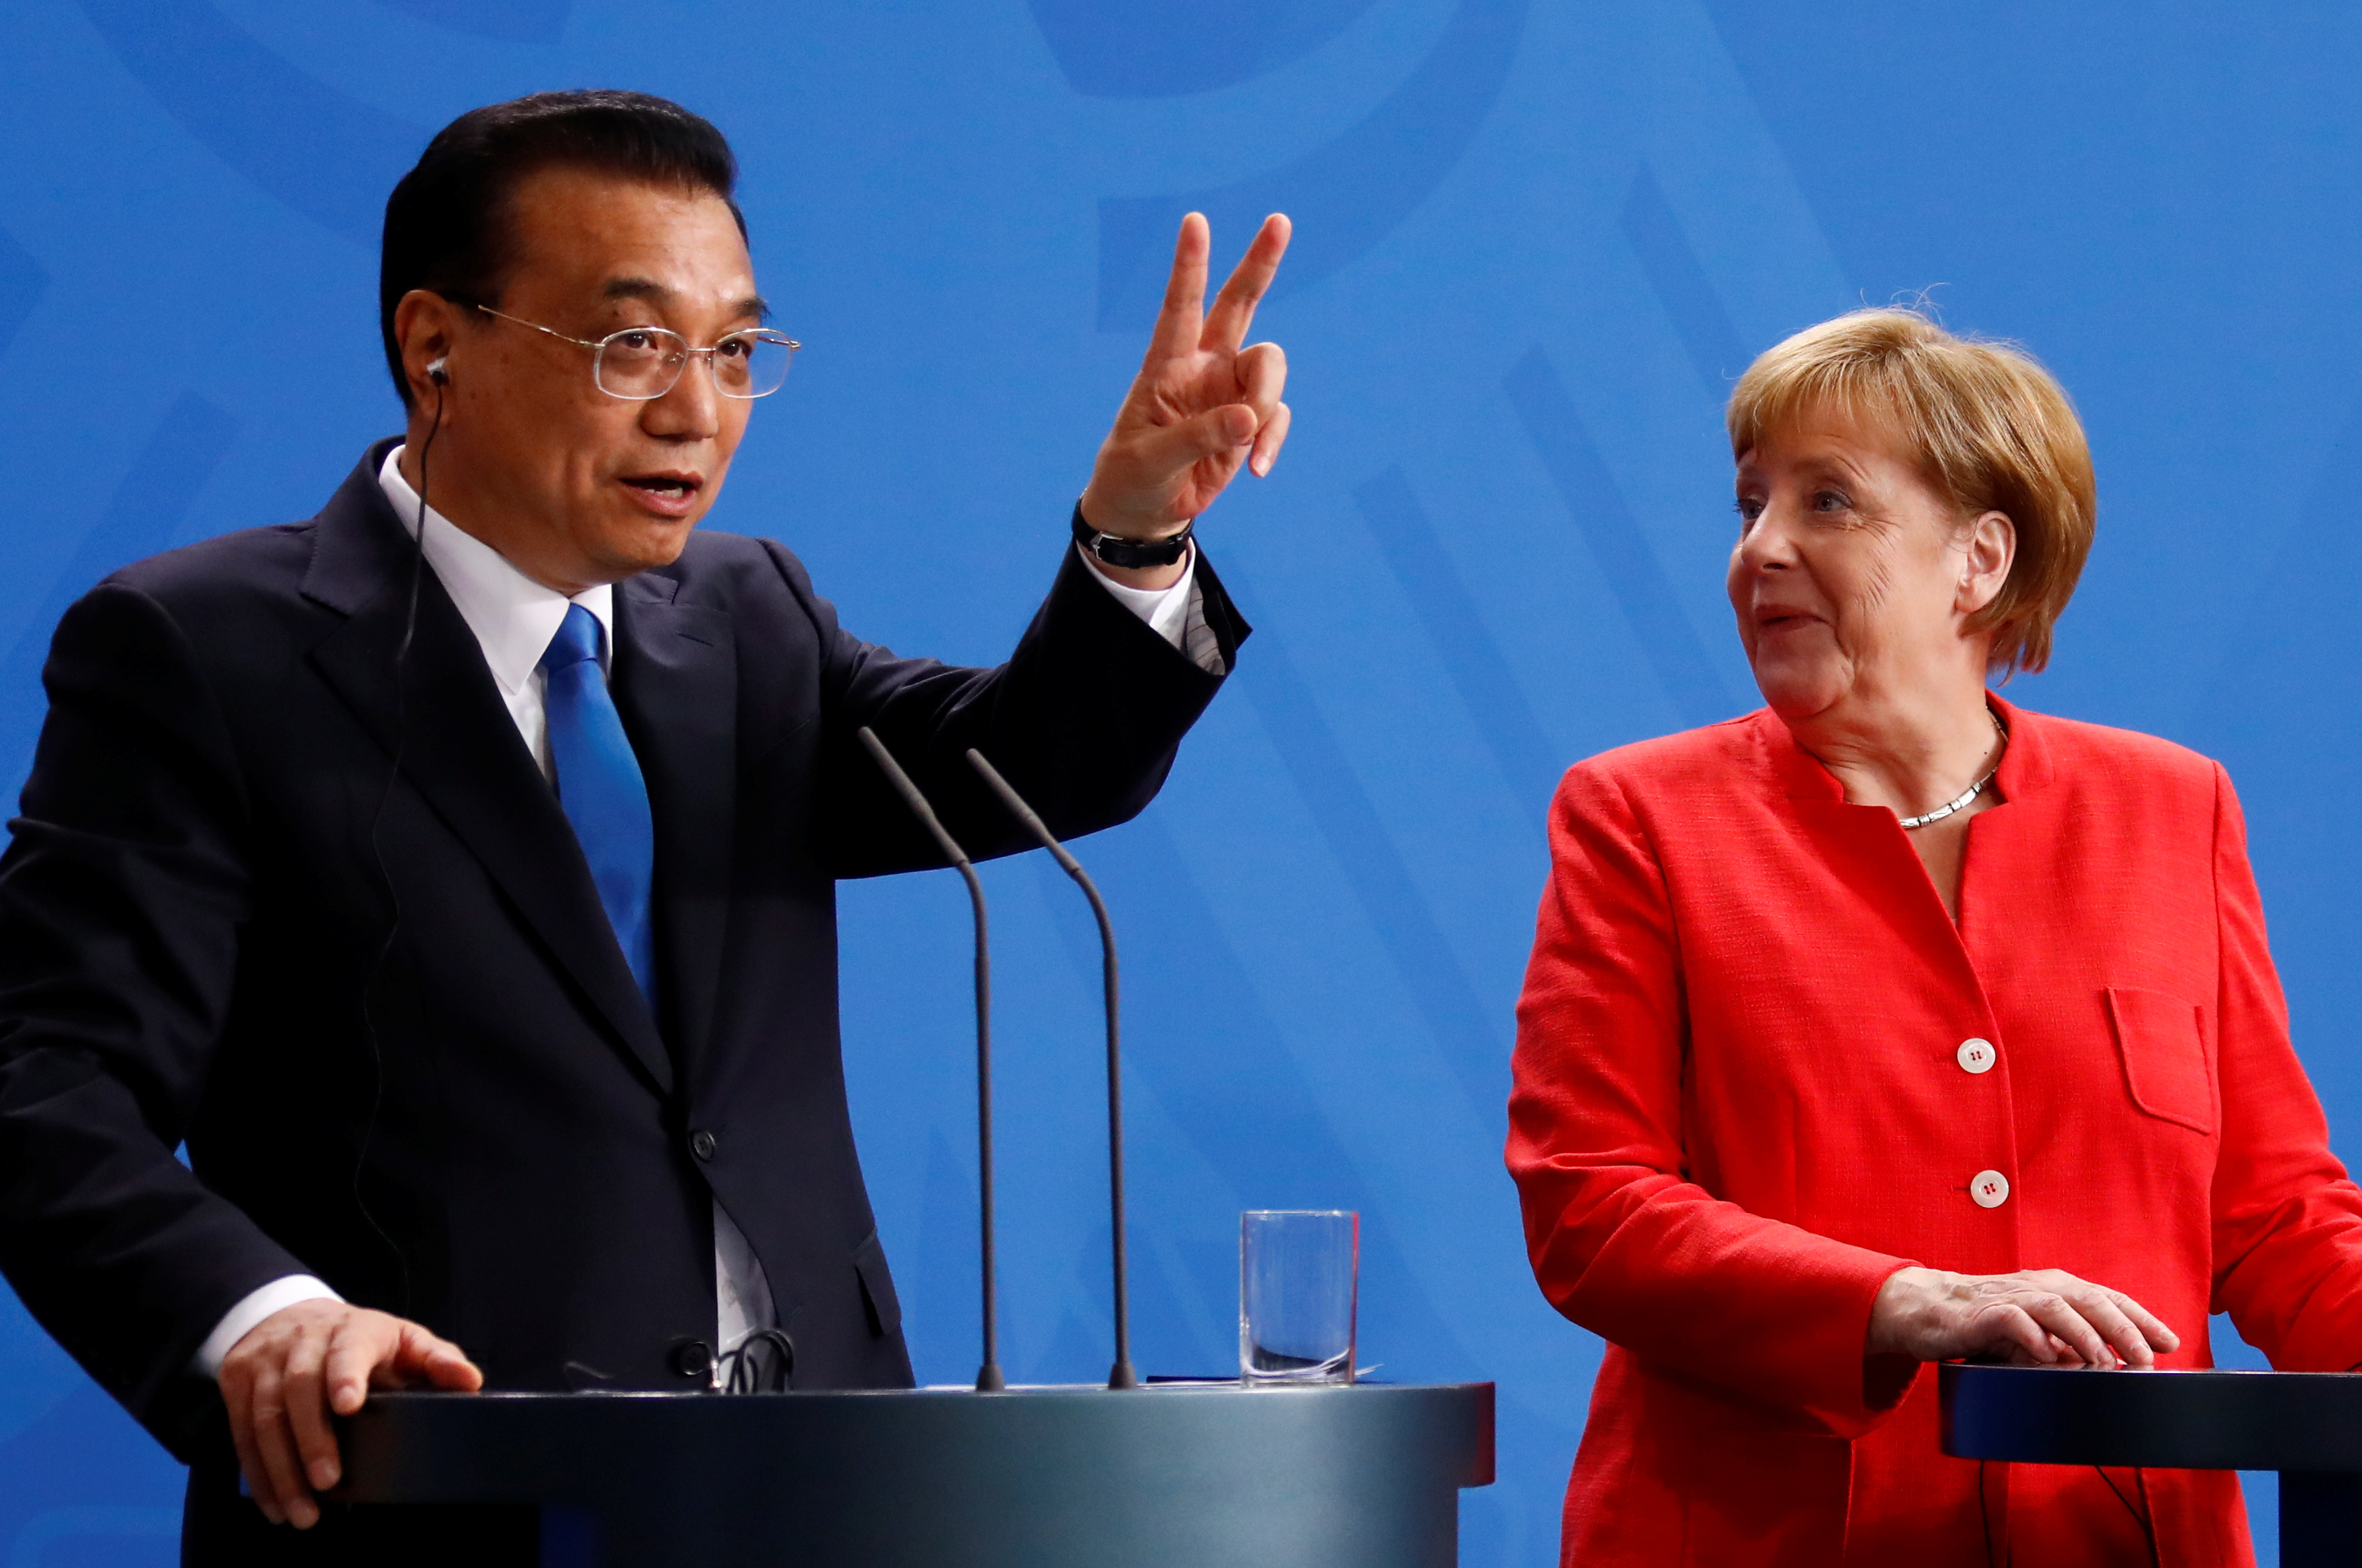 German Chancellor Angela Merkel and Chinese Prime Minister Li Keqiang hold a news conference at the chancellery in Berlin, Germany, July 9, 2018. REUTERS/Fabrizio Bensch - RC1463CDC500